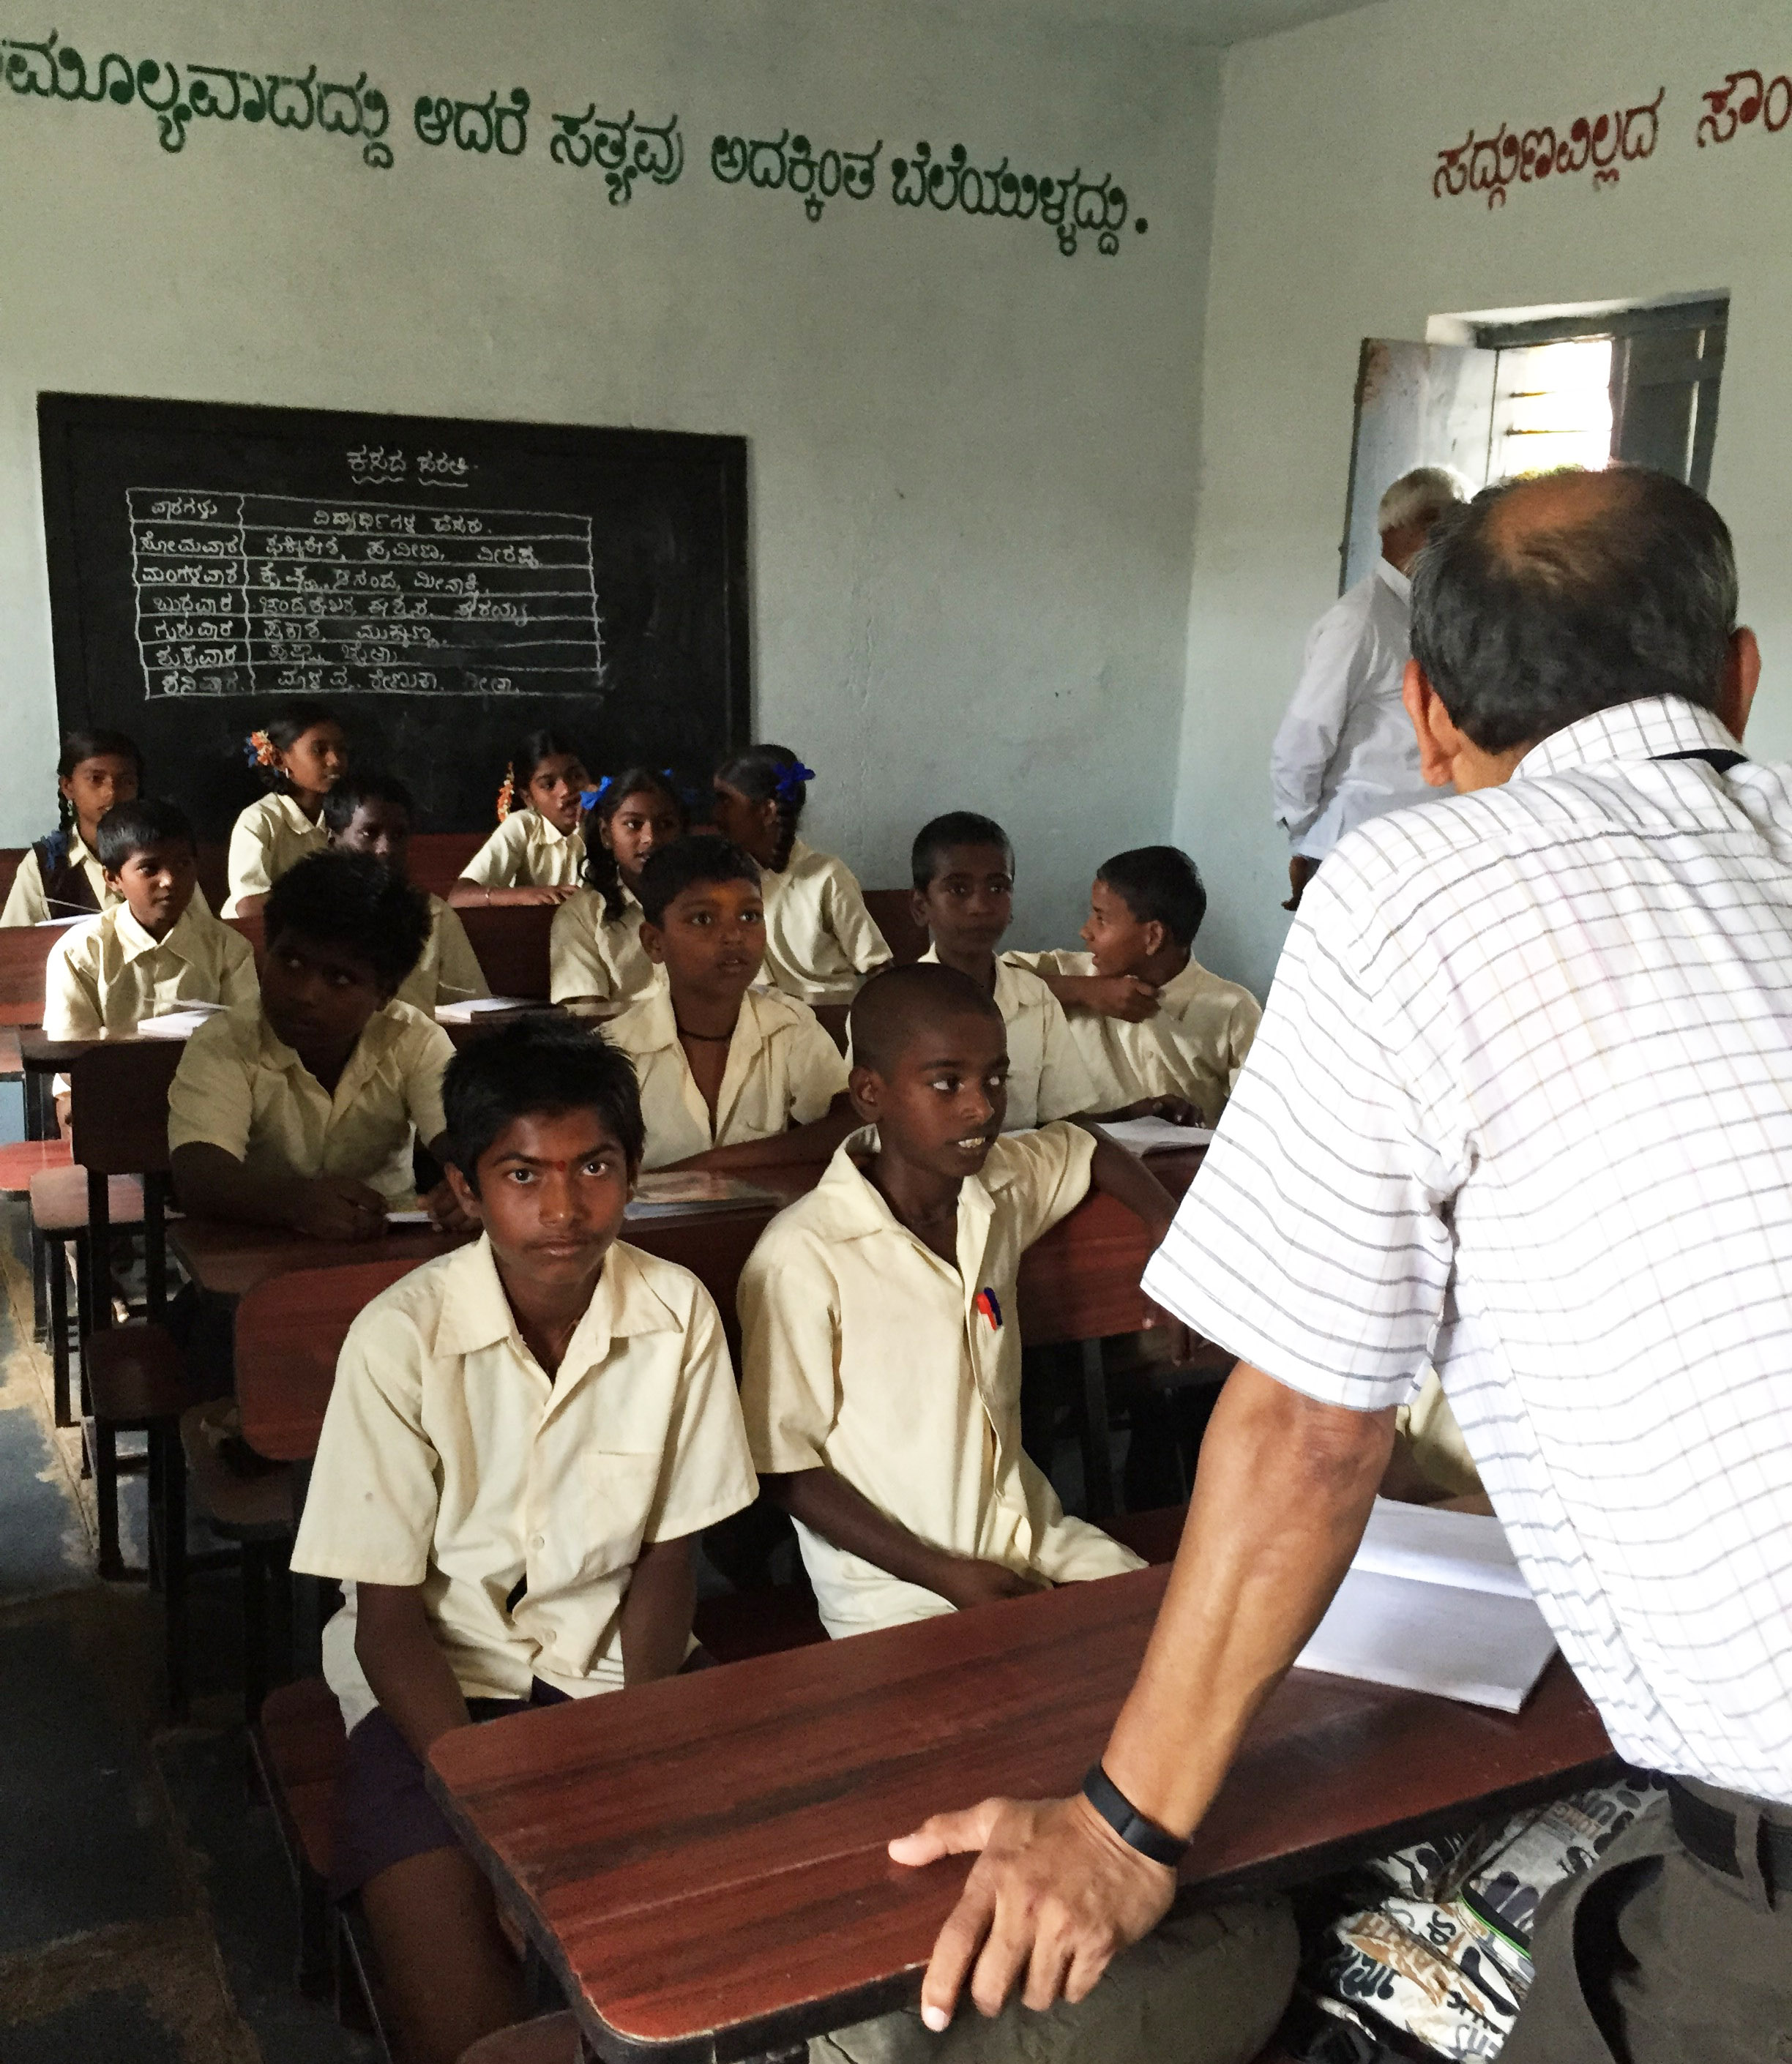 My first visit to a government school in rural India  - Akshara